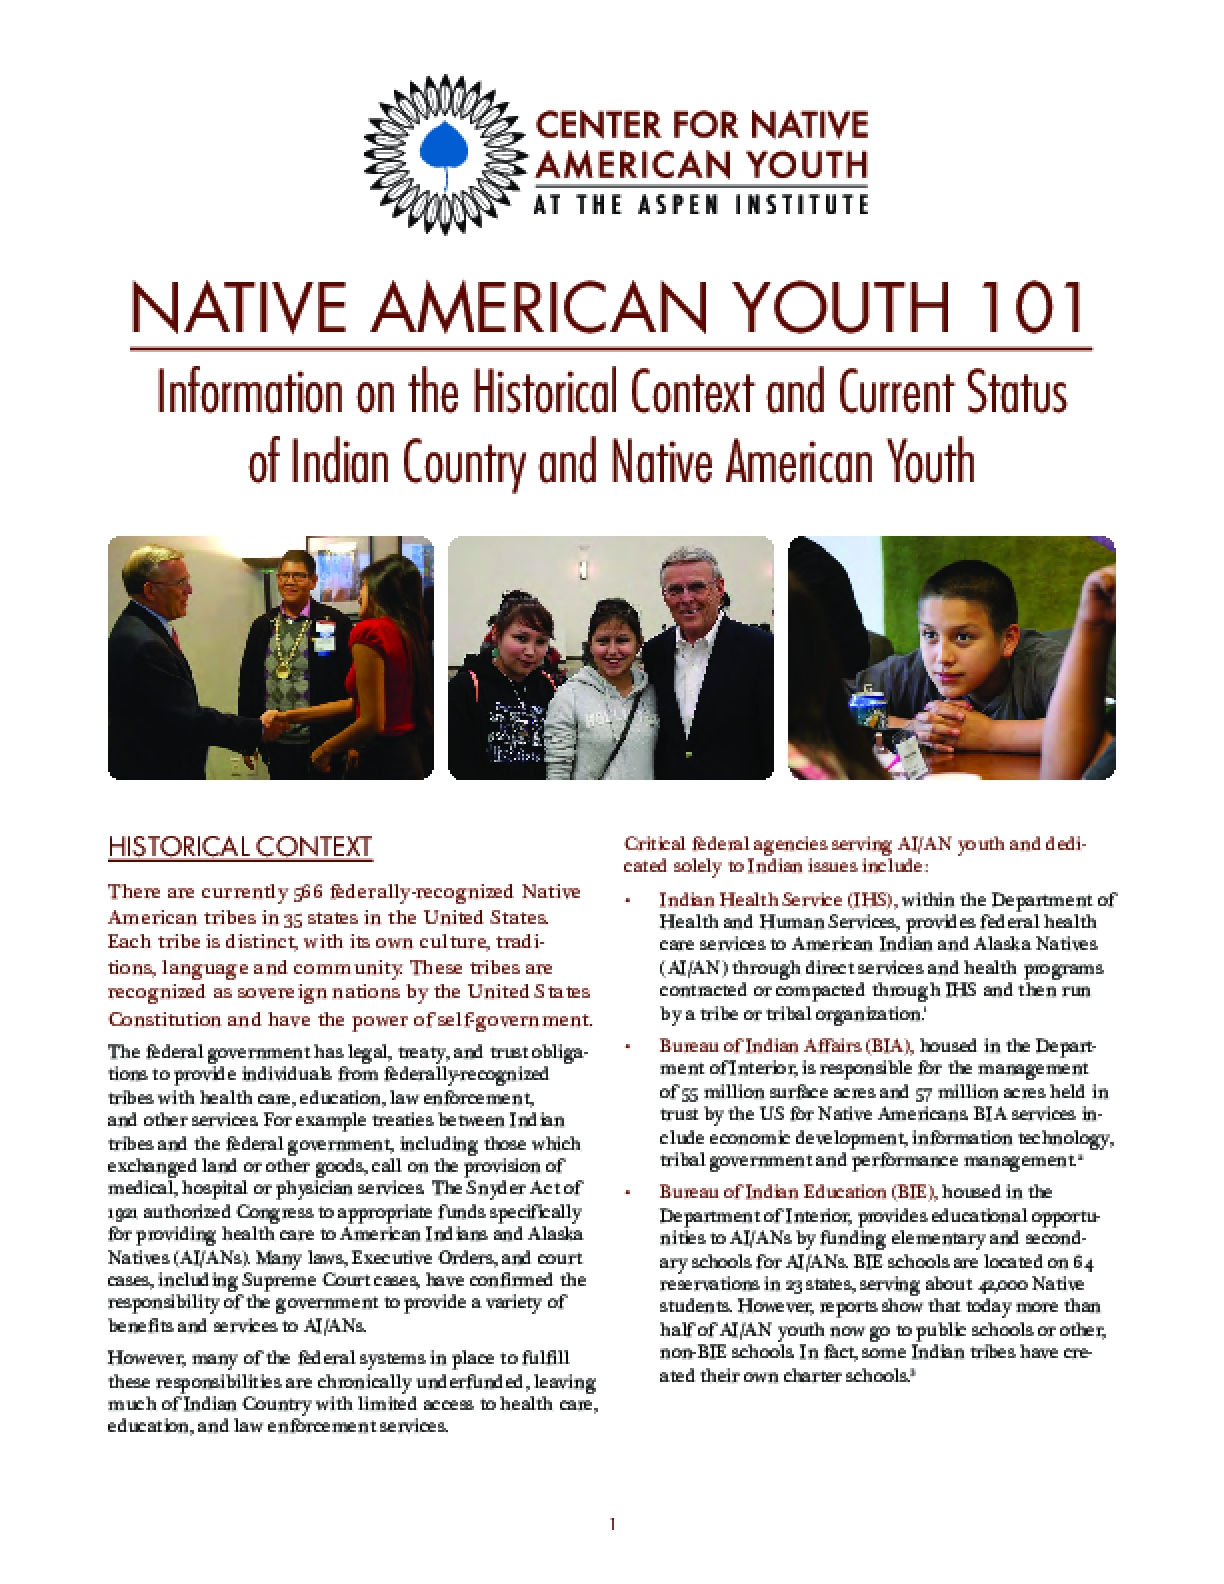 NATIVE AMERICAN YOUTH 101 - Information on the Historical Context and Current Status of Indian Country and Native American Youth